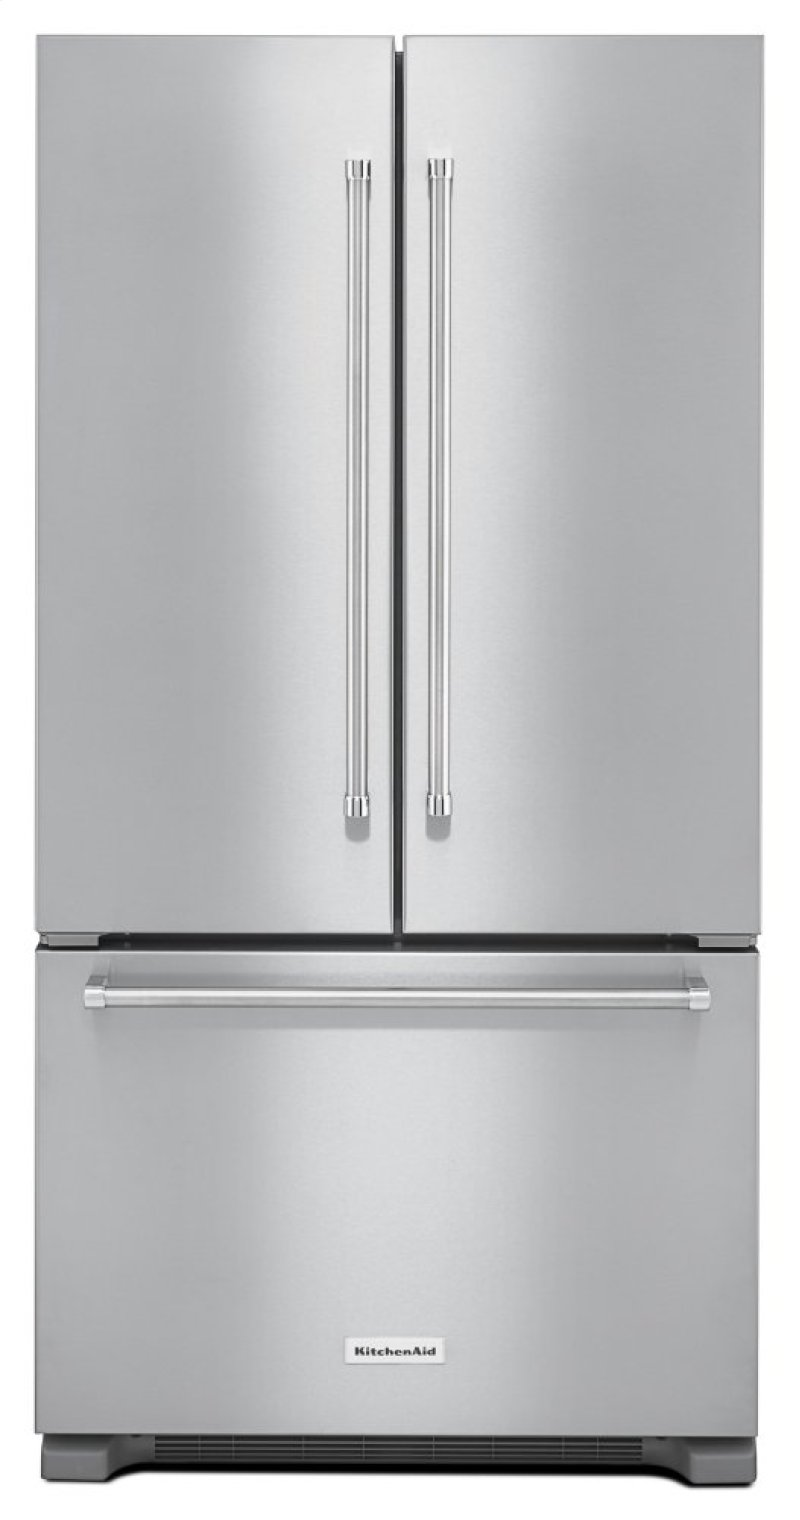 Best Counter Depth Refrigerator 2015 >> Krfc302ess In Stainless Steel By Kitchenaid In Cartersville Ga 22